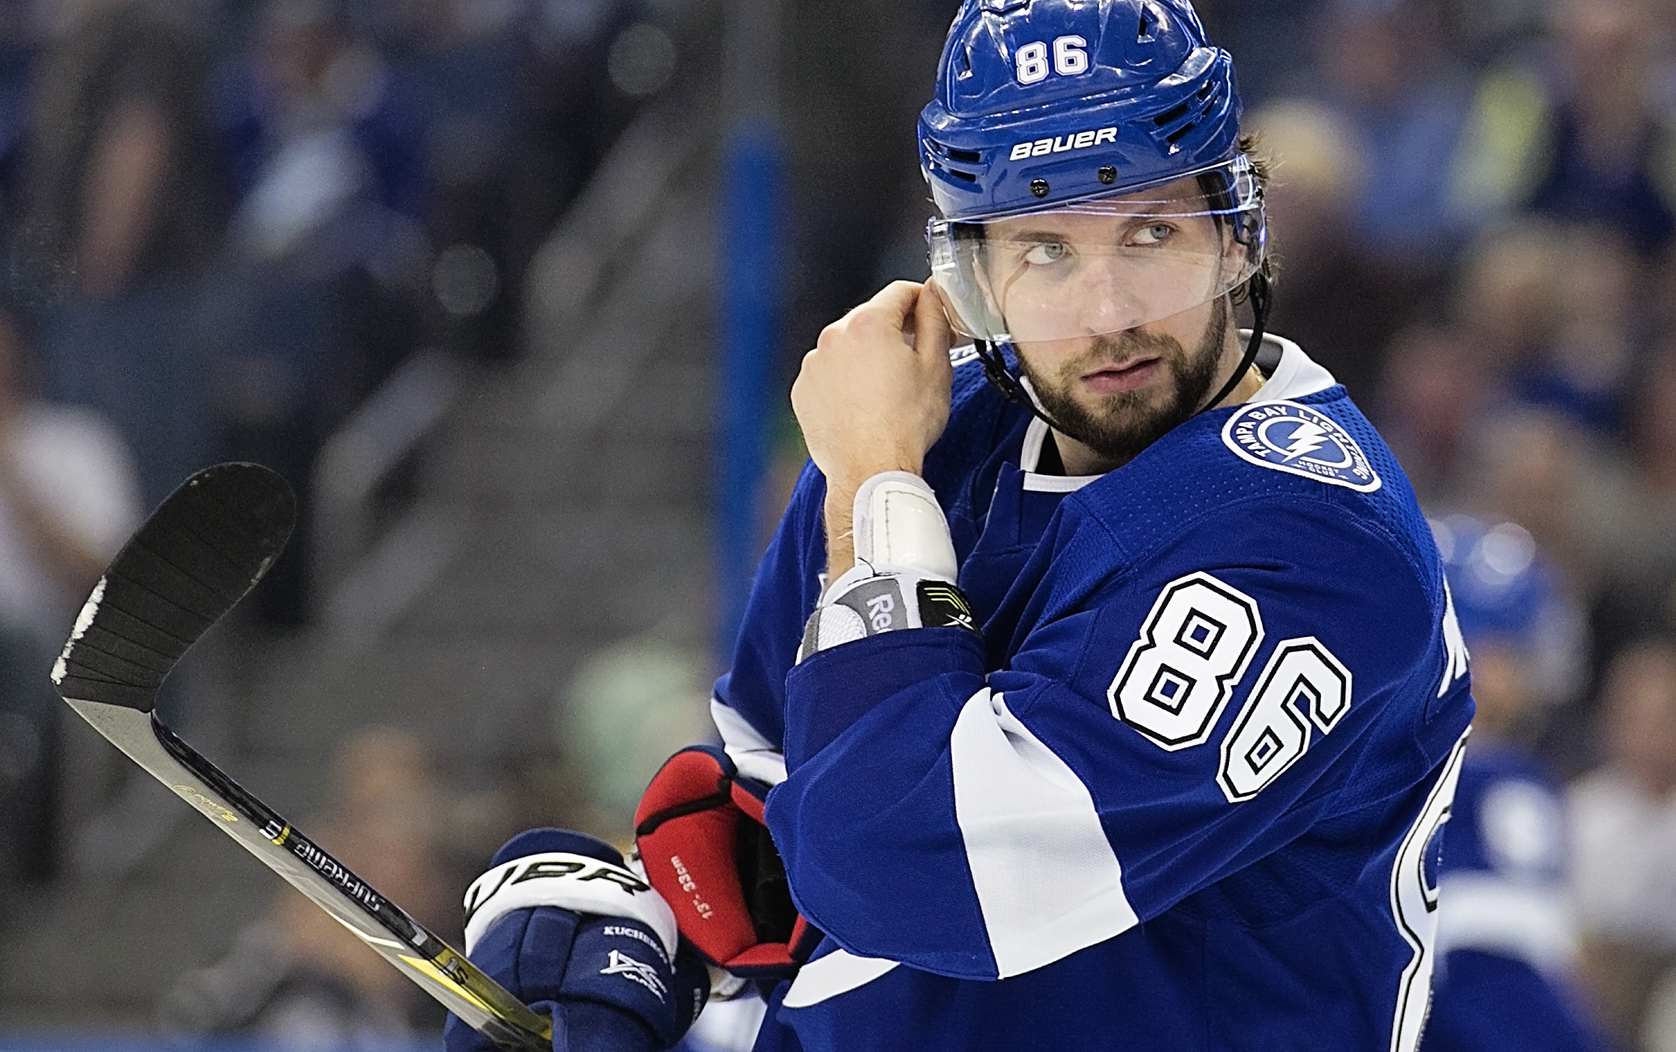 Kucherov hopes to measure up to Game Seven./CARMEN MANDATO